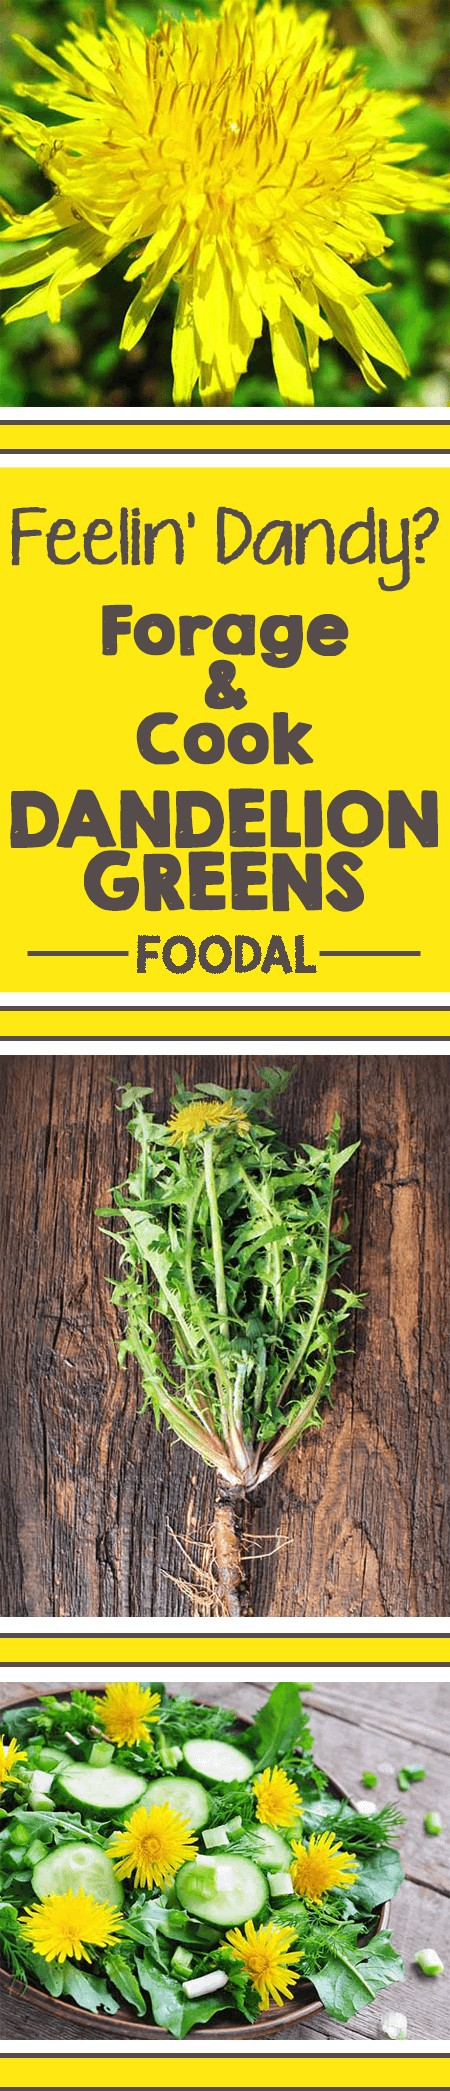 It's the much-feared yellow flower we all love to hate. While you might finding yourself watching dandelions eat up your yard and garden, don't forget that you have a great counterattack handy: eating them up! Learn some basics on foraging, buying, storing, cooking, and even the health benefits of harvesting this wild weed green now! https://foodal.com/knowledge/paleo/dandelion-greens/